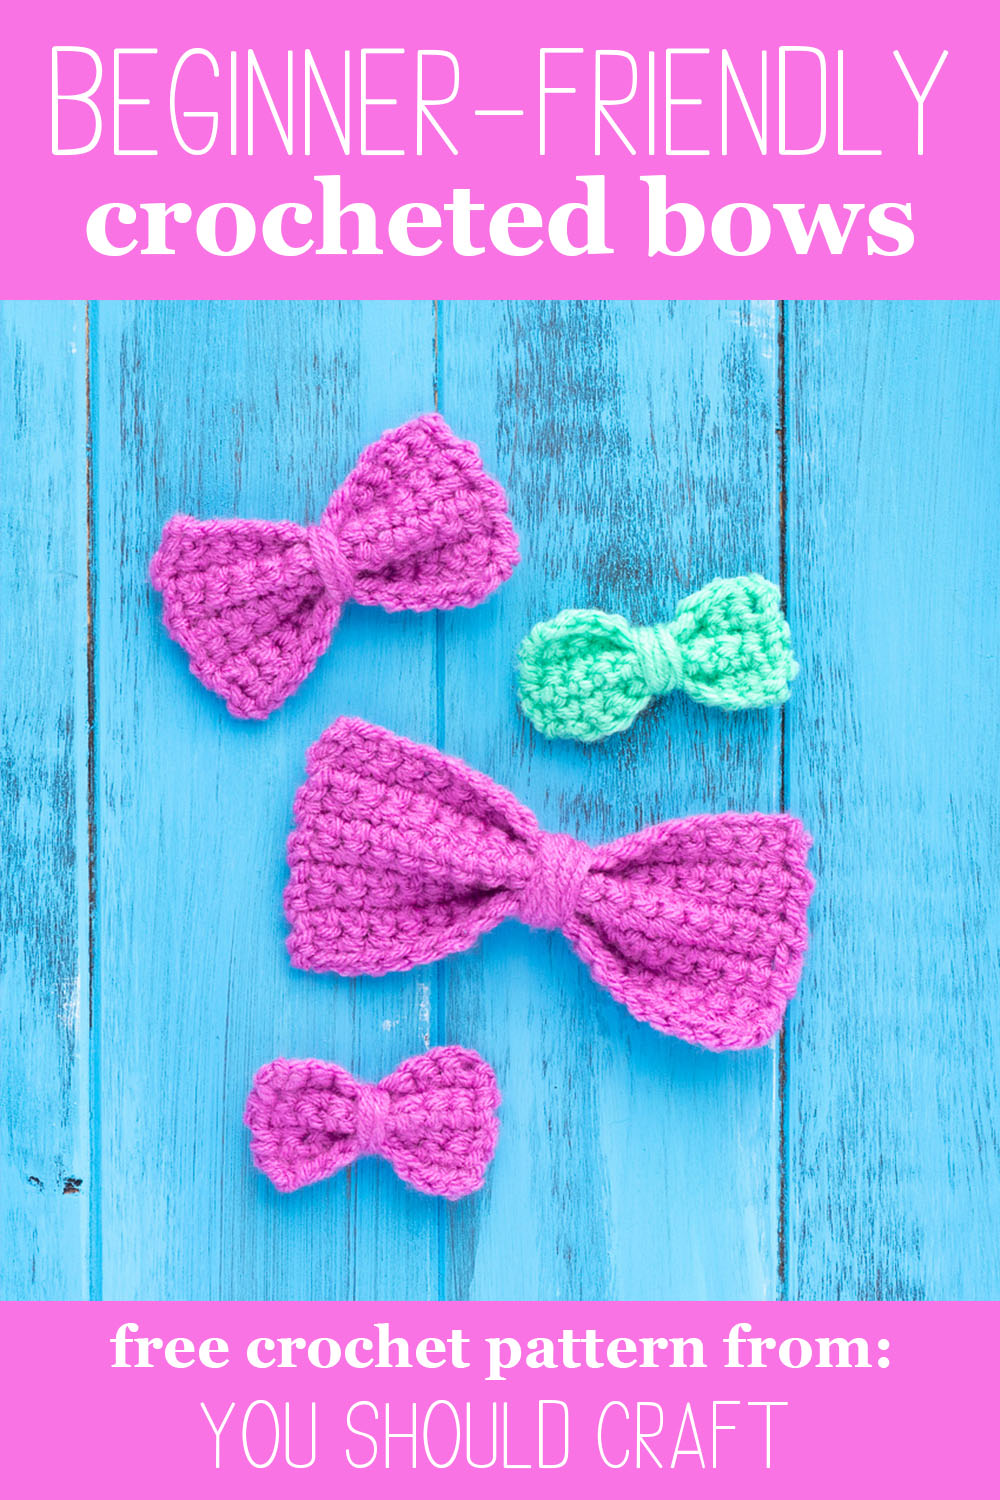 """four crocheted bows on a blue wood background, with text """"beginner-friendly crocheted bows - free crochet pattern from you should craft"""""""